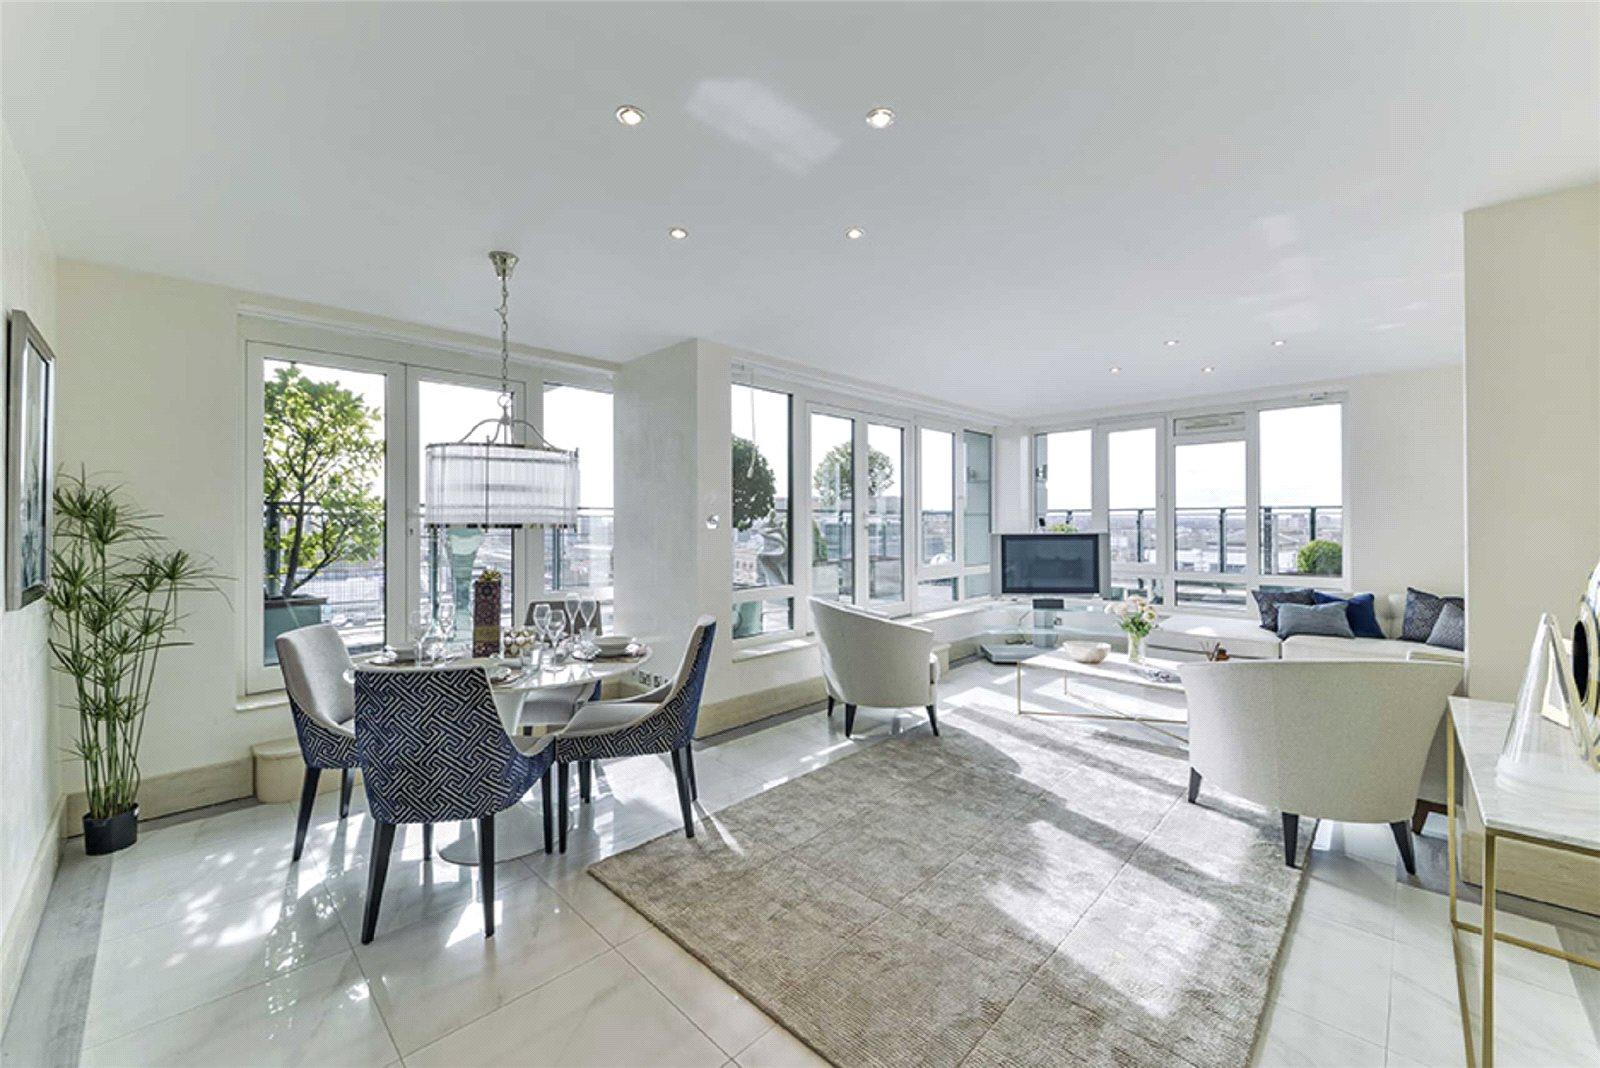 3 Bedrooms Apartment Flat for sale in Warren House, Beckford Close, West Kensington, London, W14